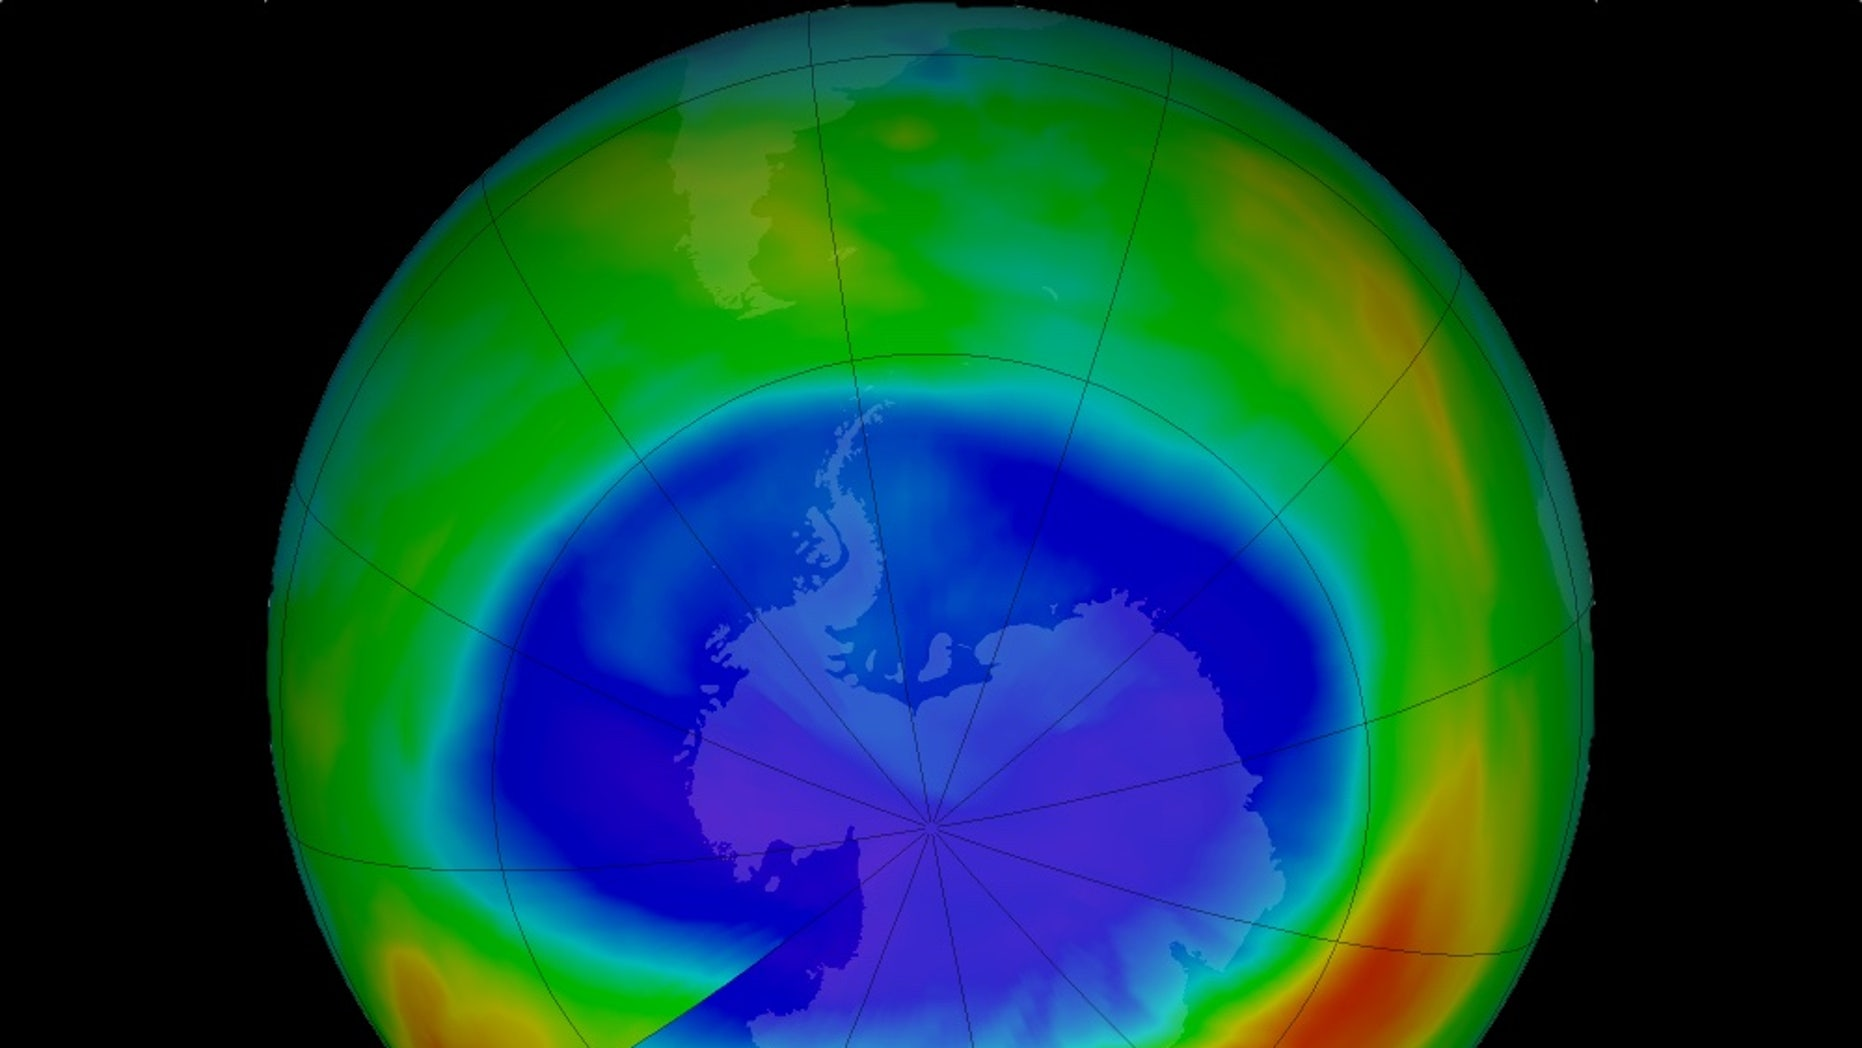 The ozone hole over Antarctica shrunk to its smallest maximum-extent in September 2017. Here, in this false-color view of the monthly-averaged total ozone the blue and purple indicate areas with the least ozone, while yellows and reds mean the most ozone.